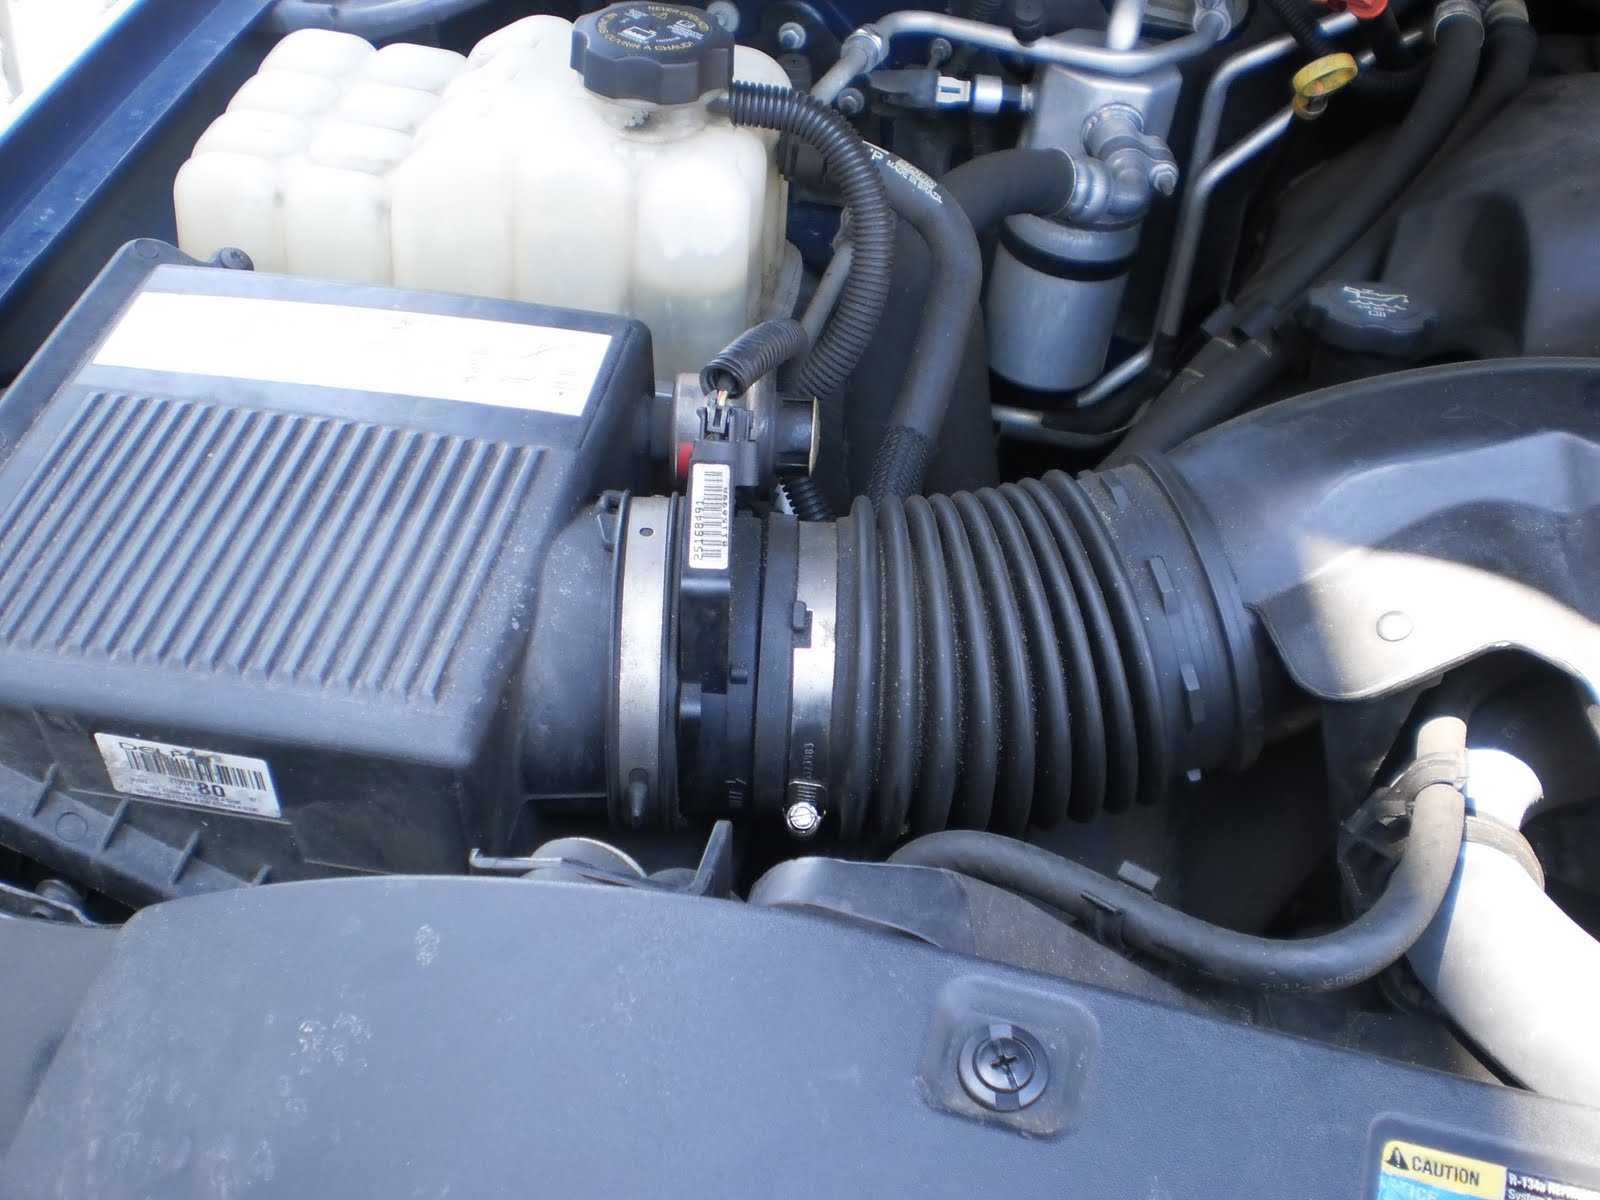 7n plug wiring diagram 1987 toyota mr2 chevrolet fuel filters get free image about